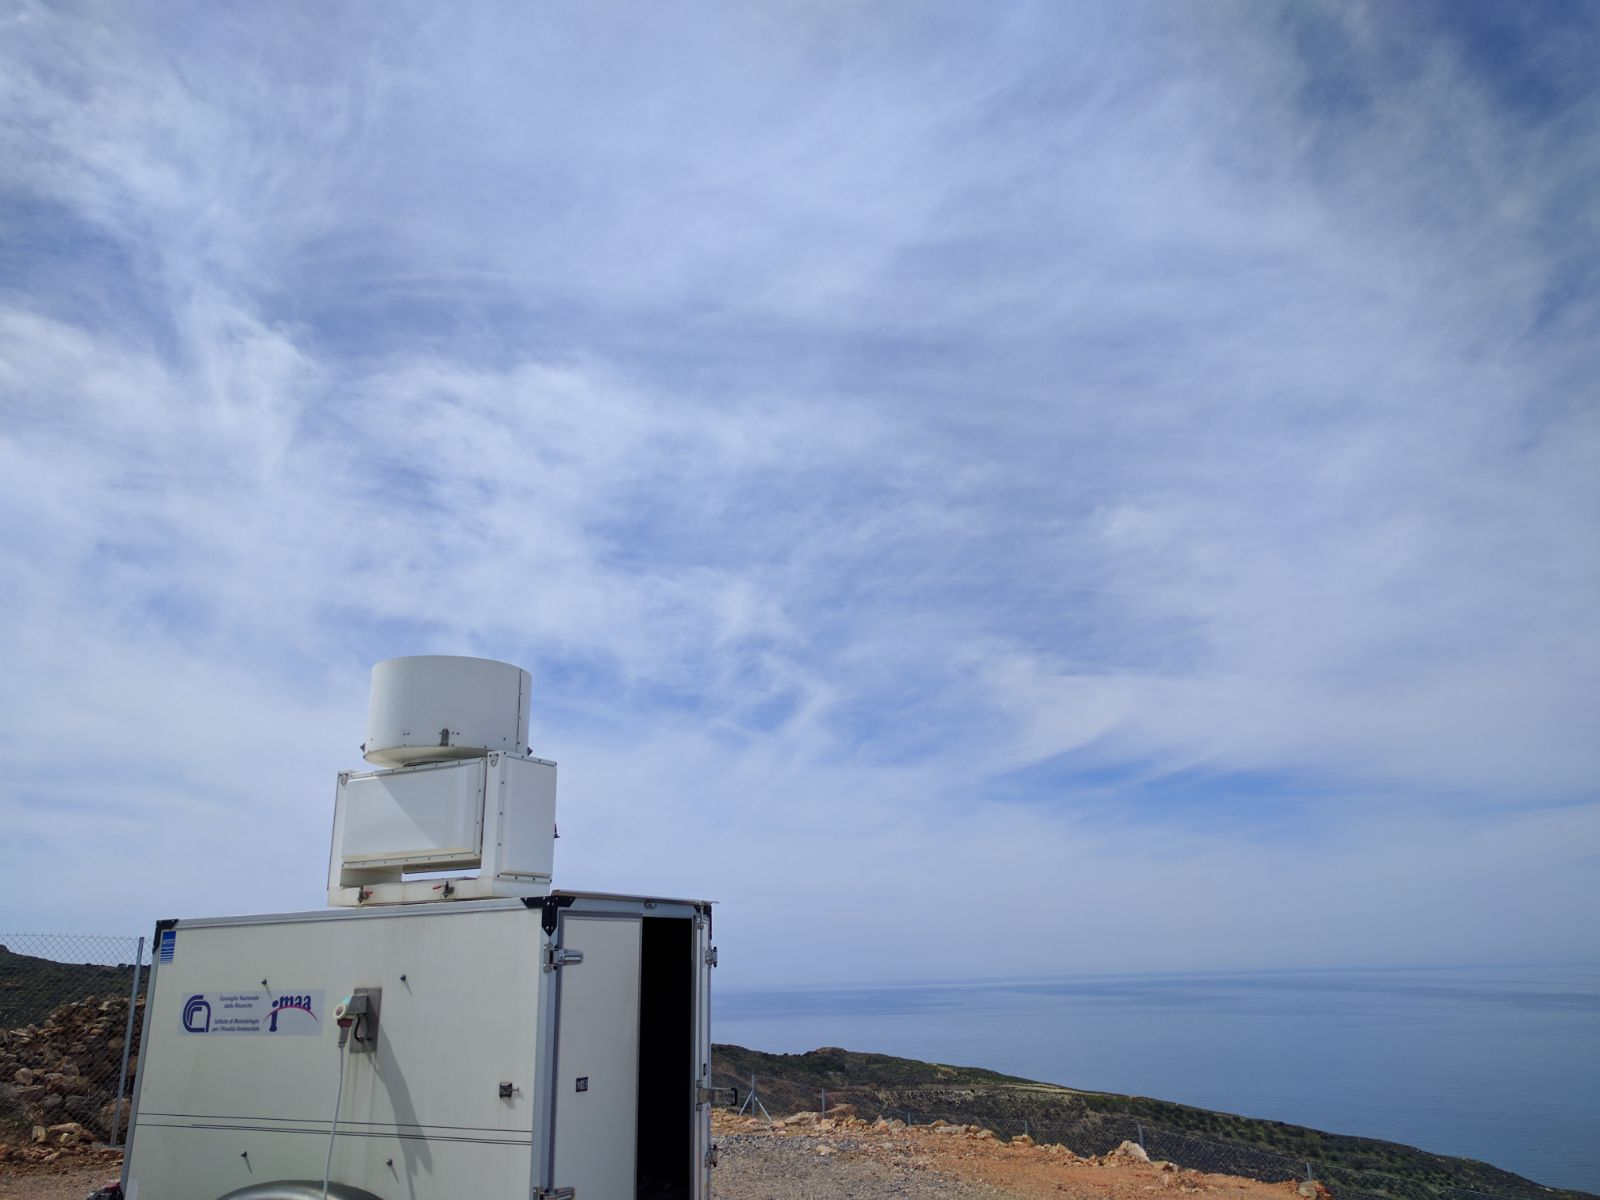 Cirrus clouds observation at Finokalia site.